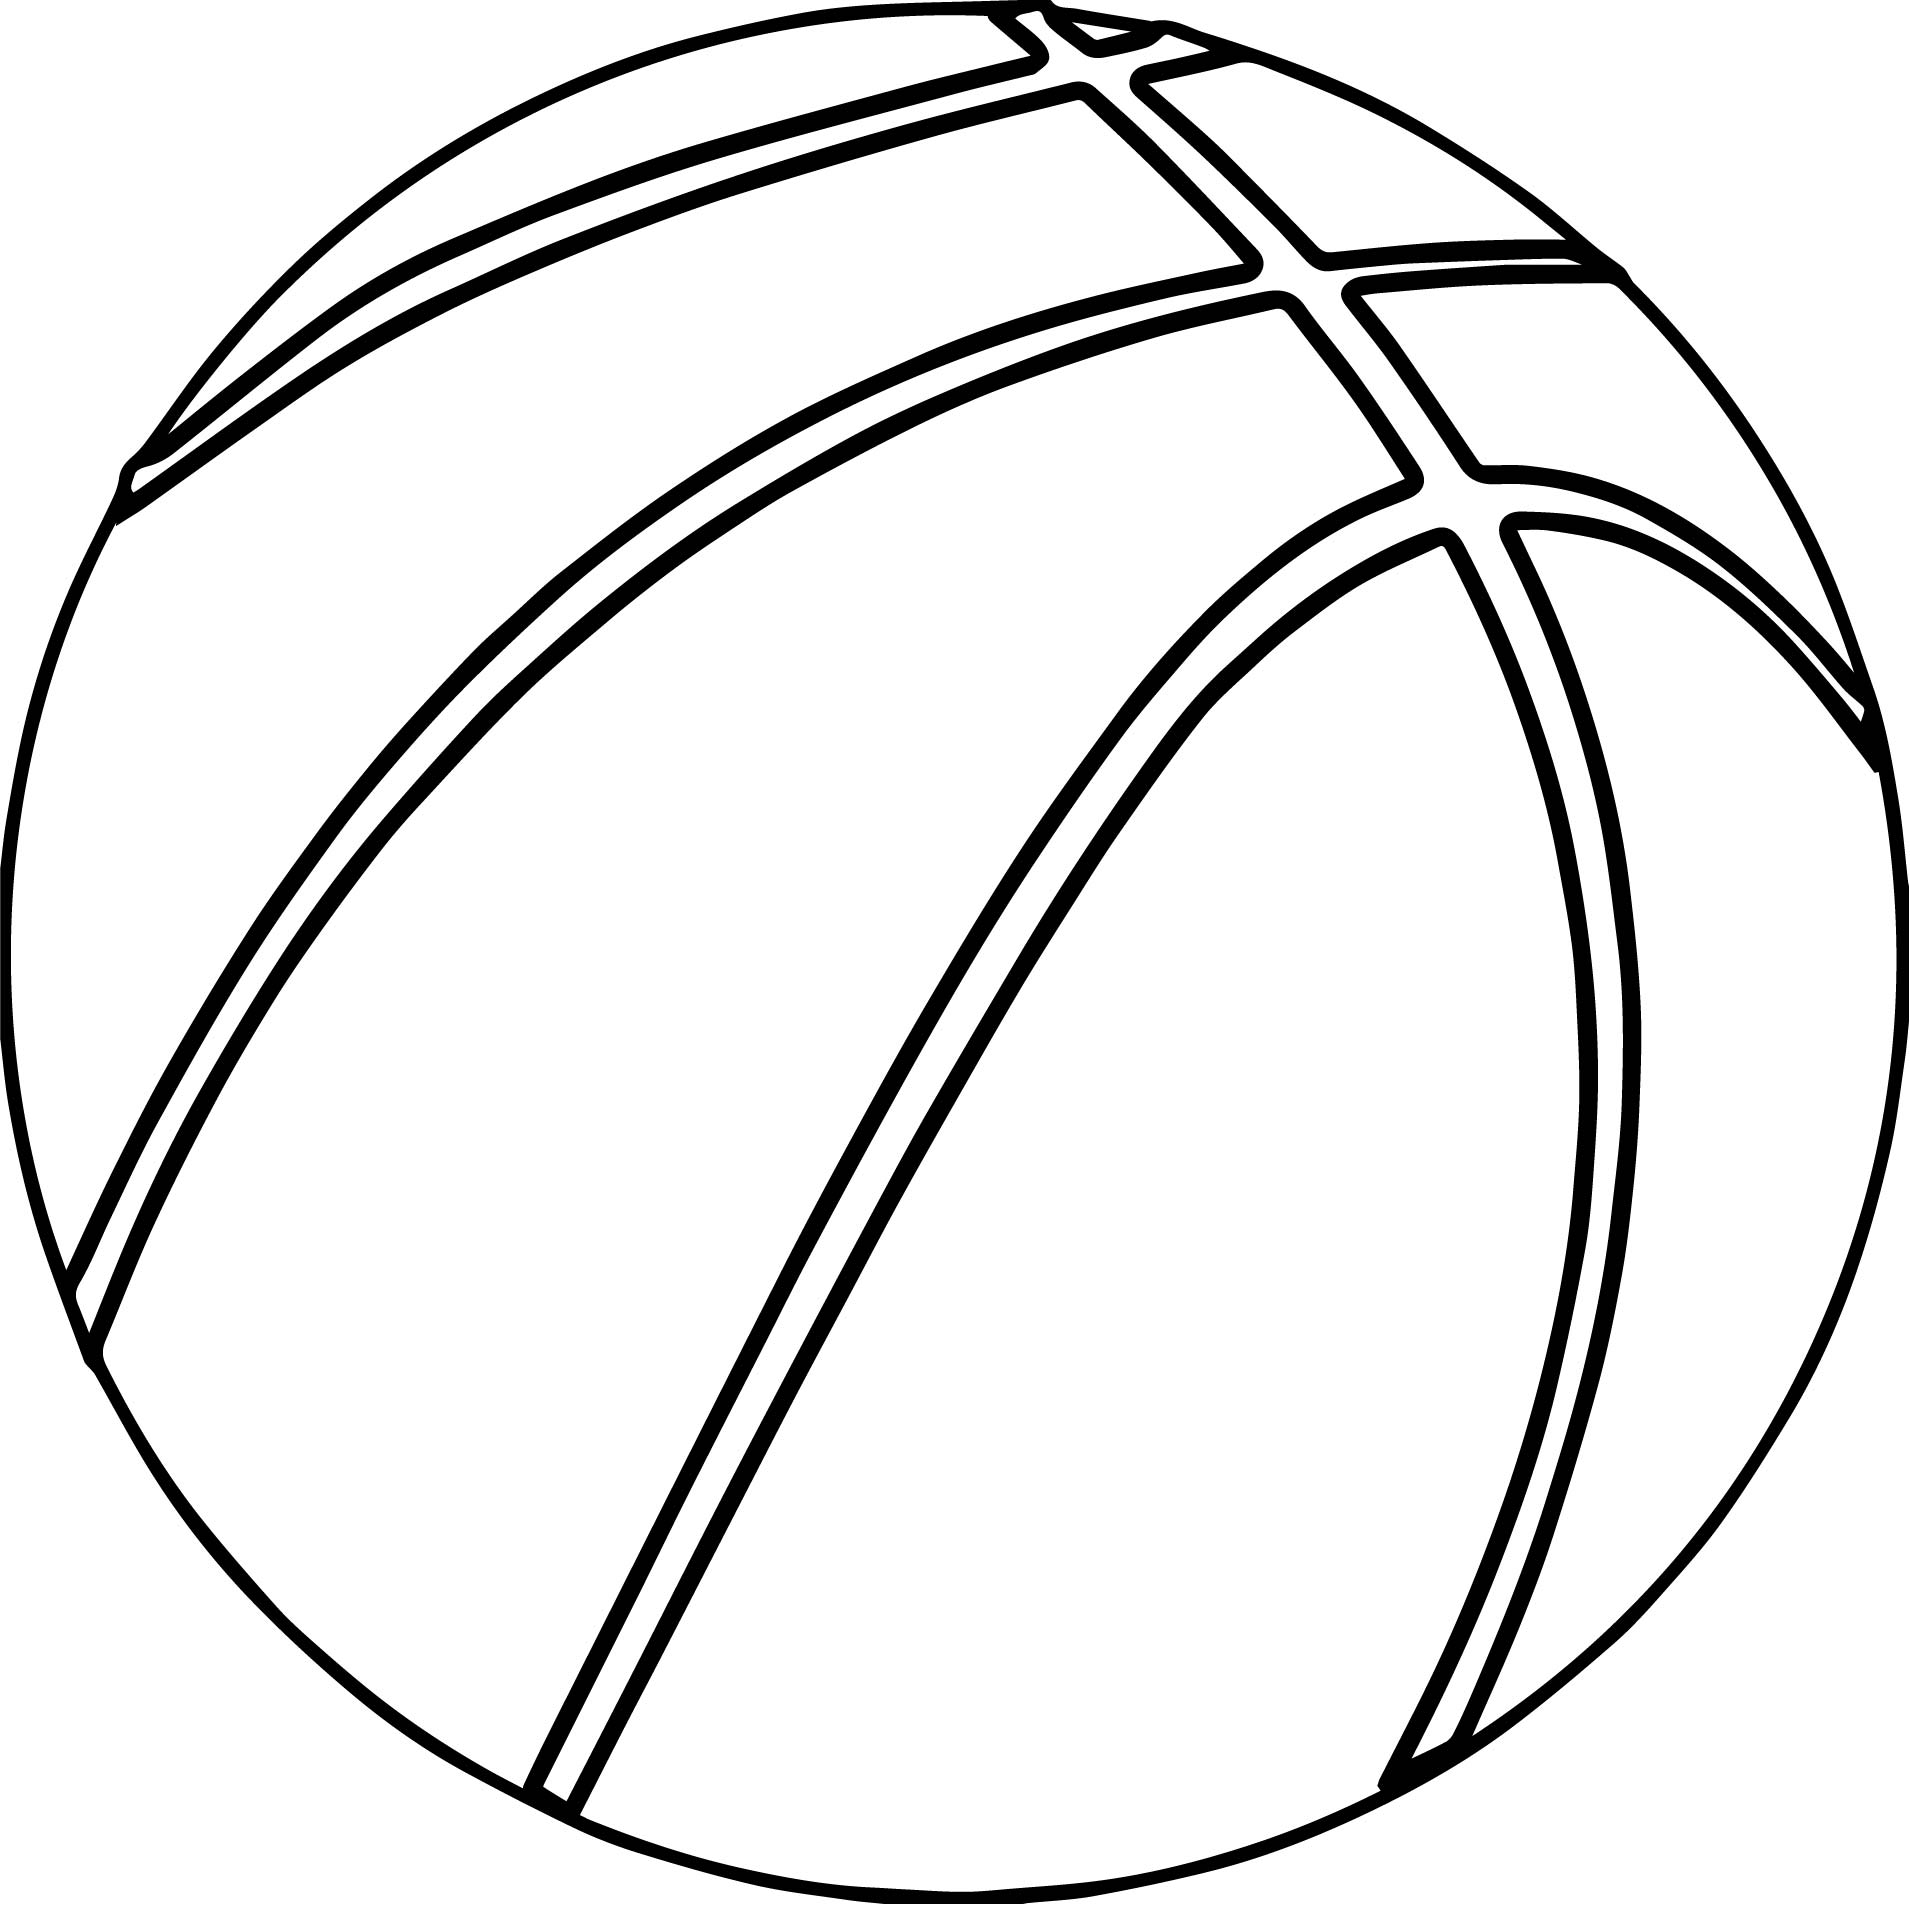 basketball ball outline coloring page wecoloringpage